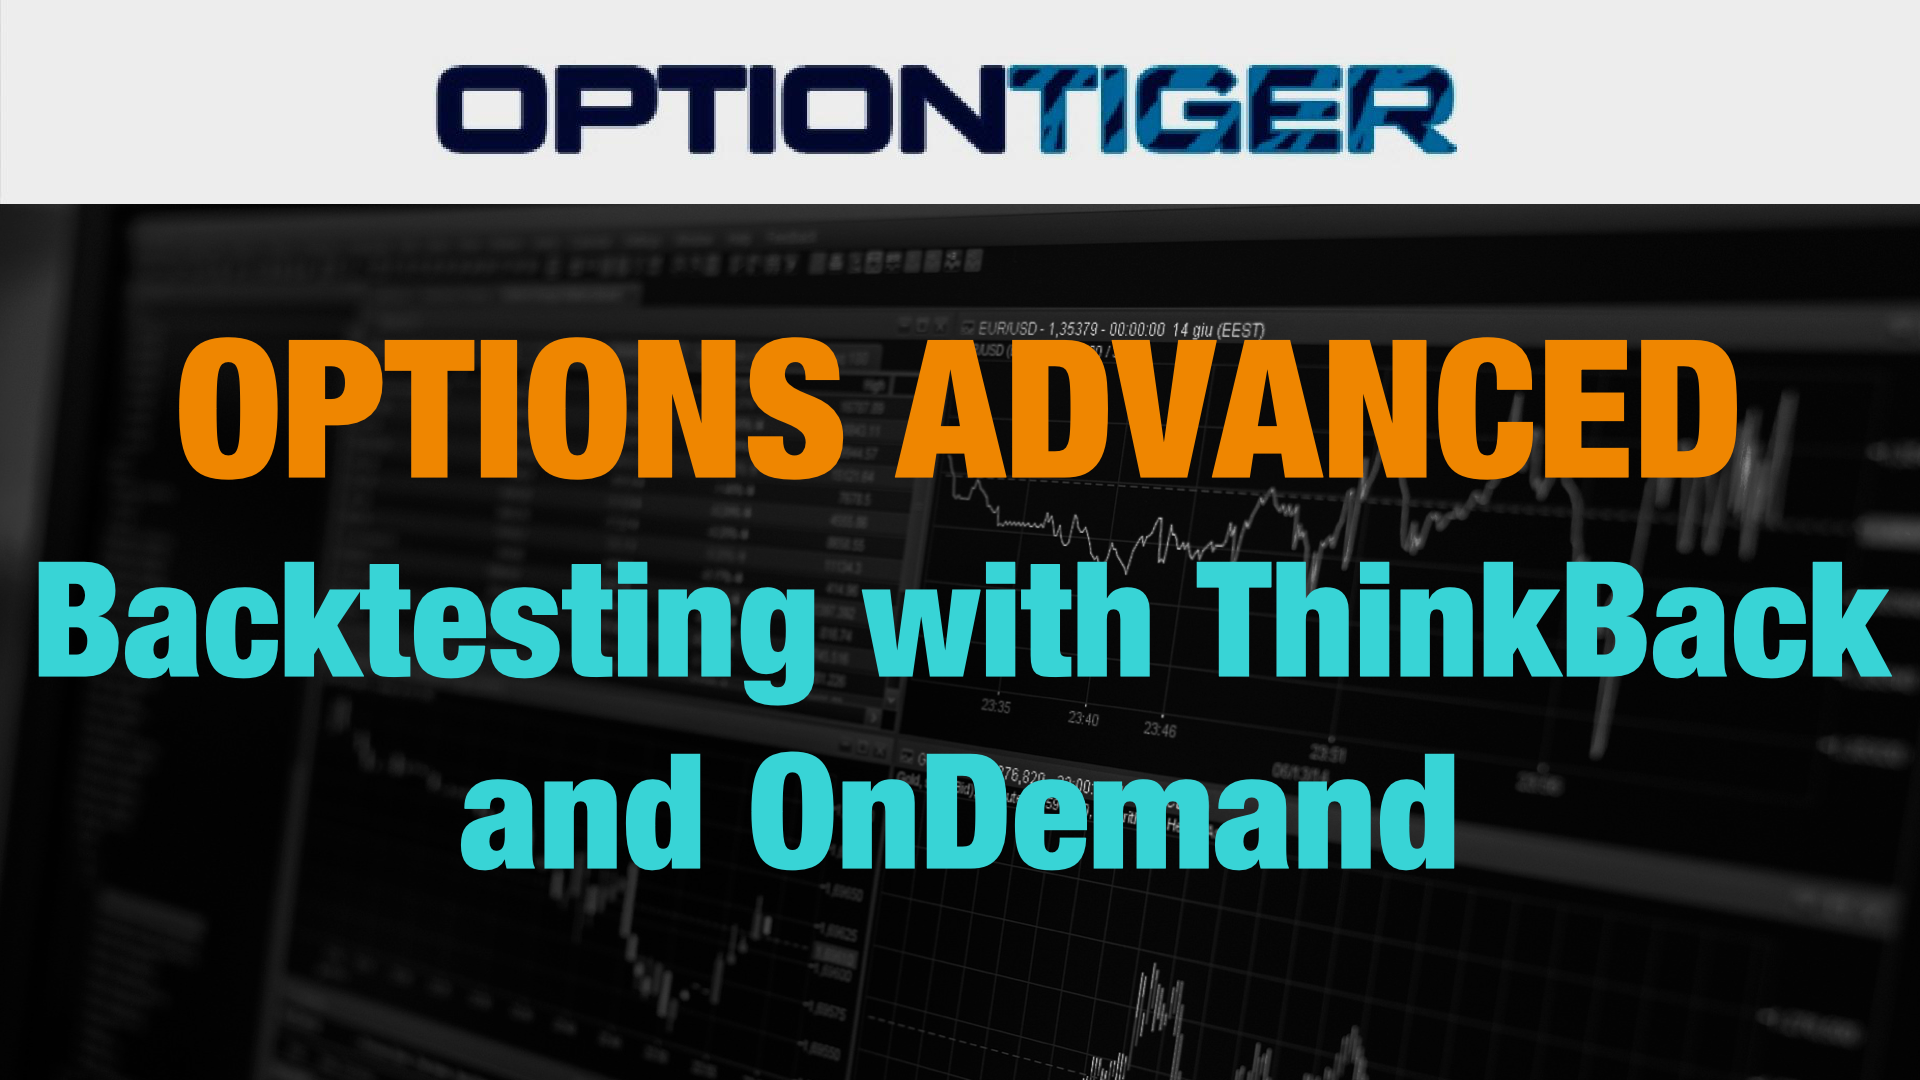 BackTesting with ThinkBack and On Demand - OptionTiger